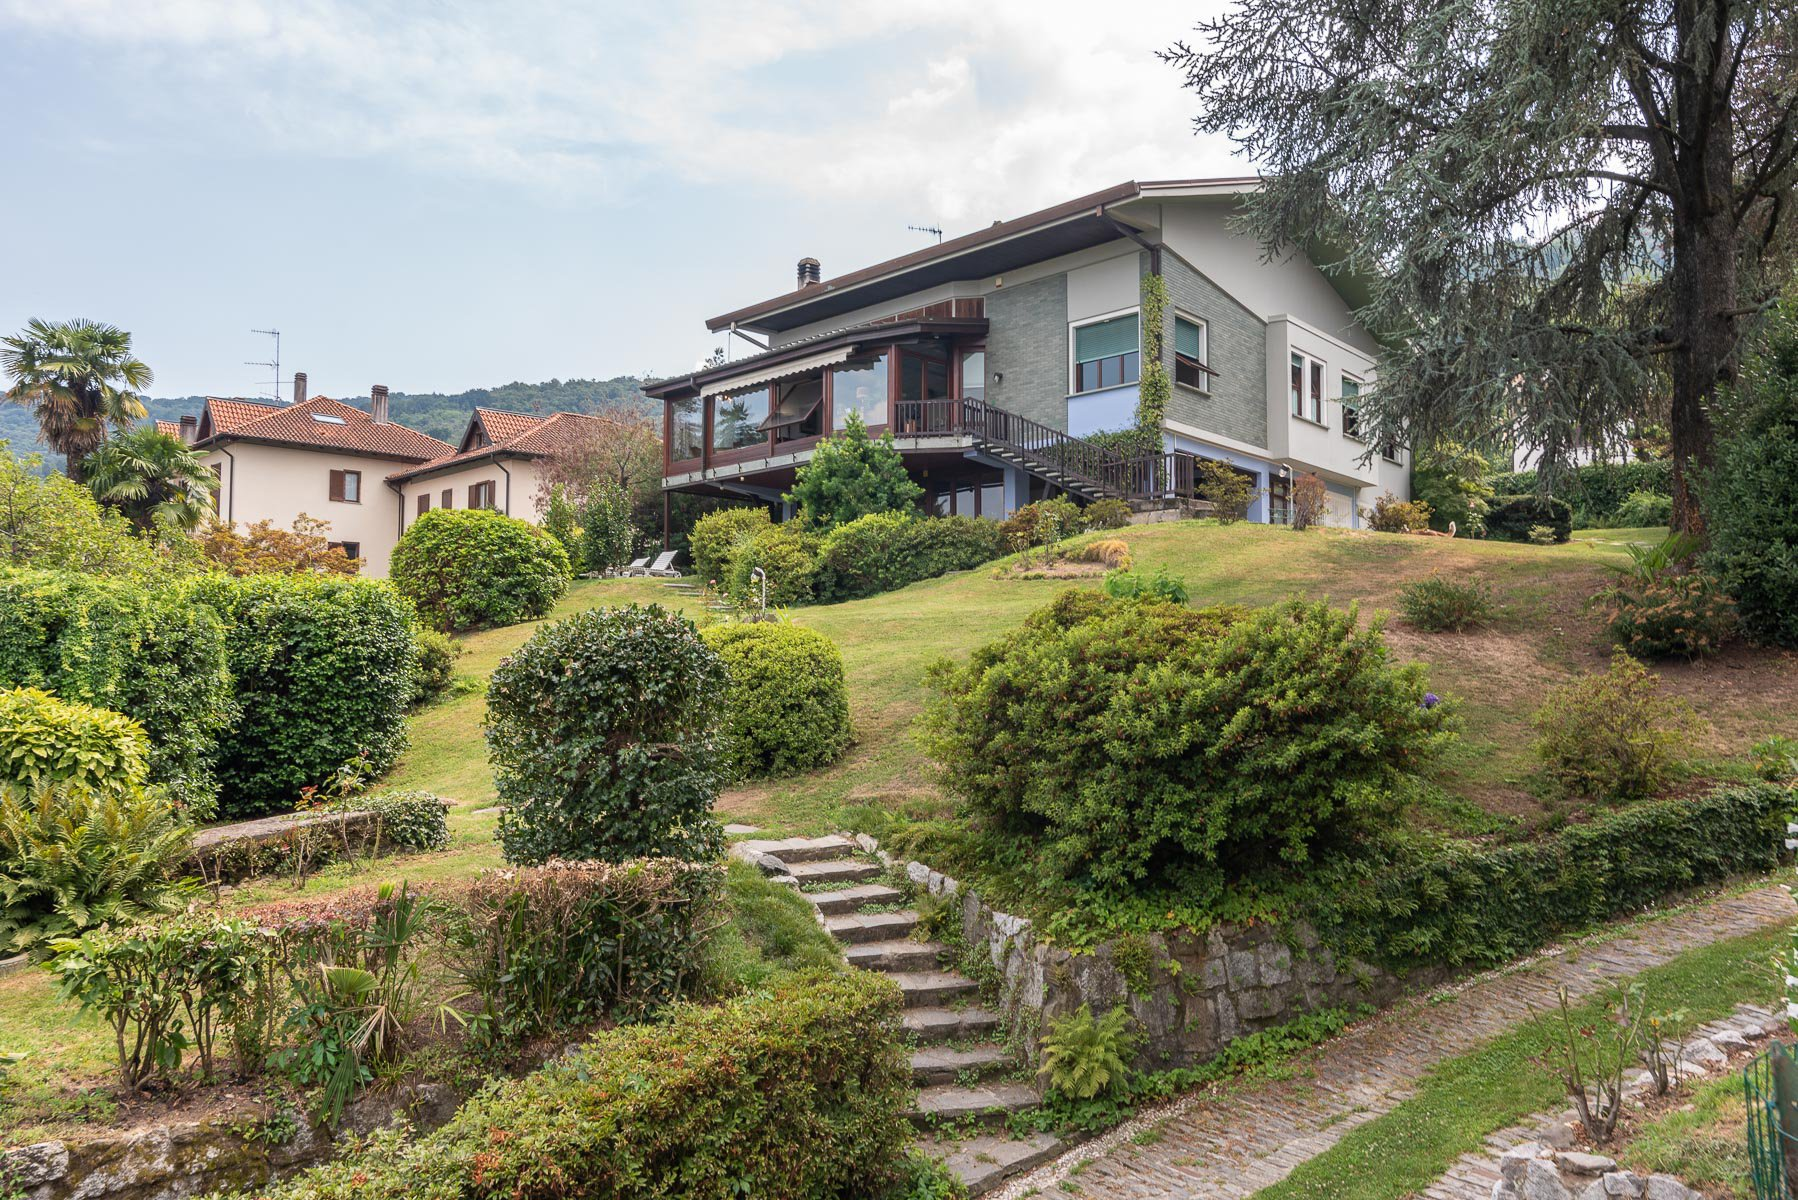 Elegant house with garden for sale in Stresa - garden